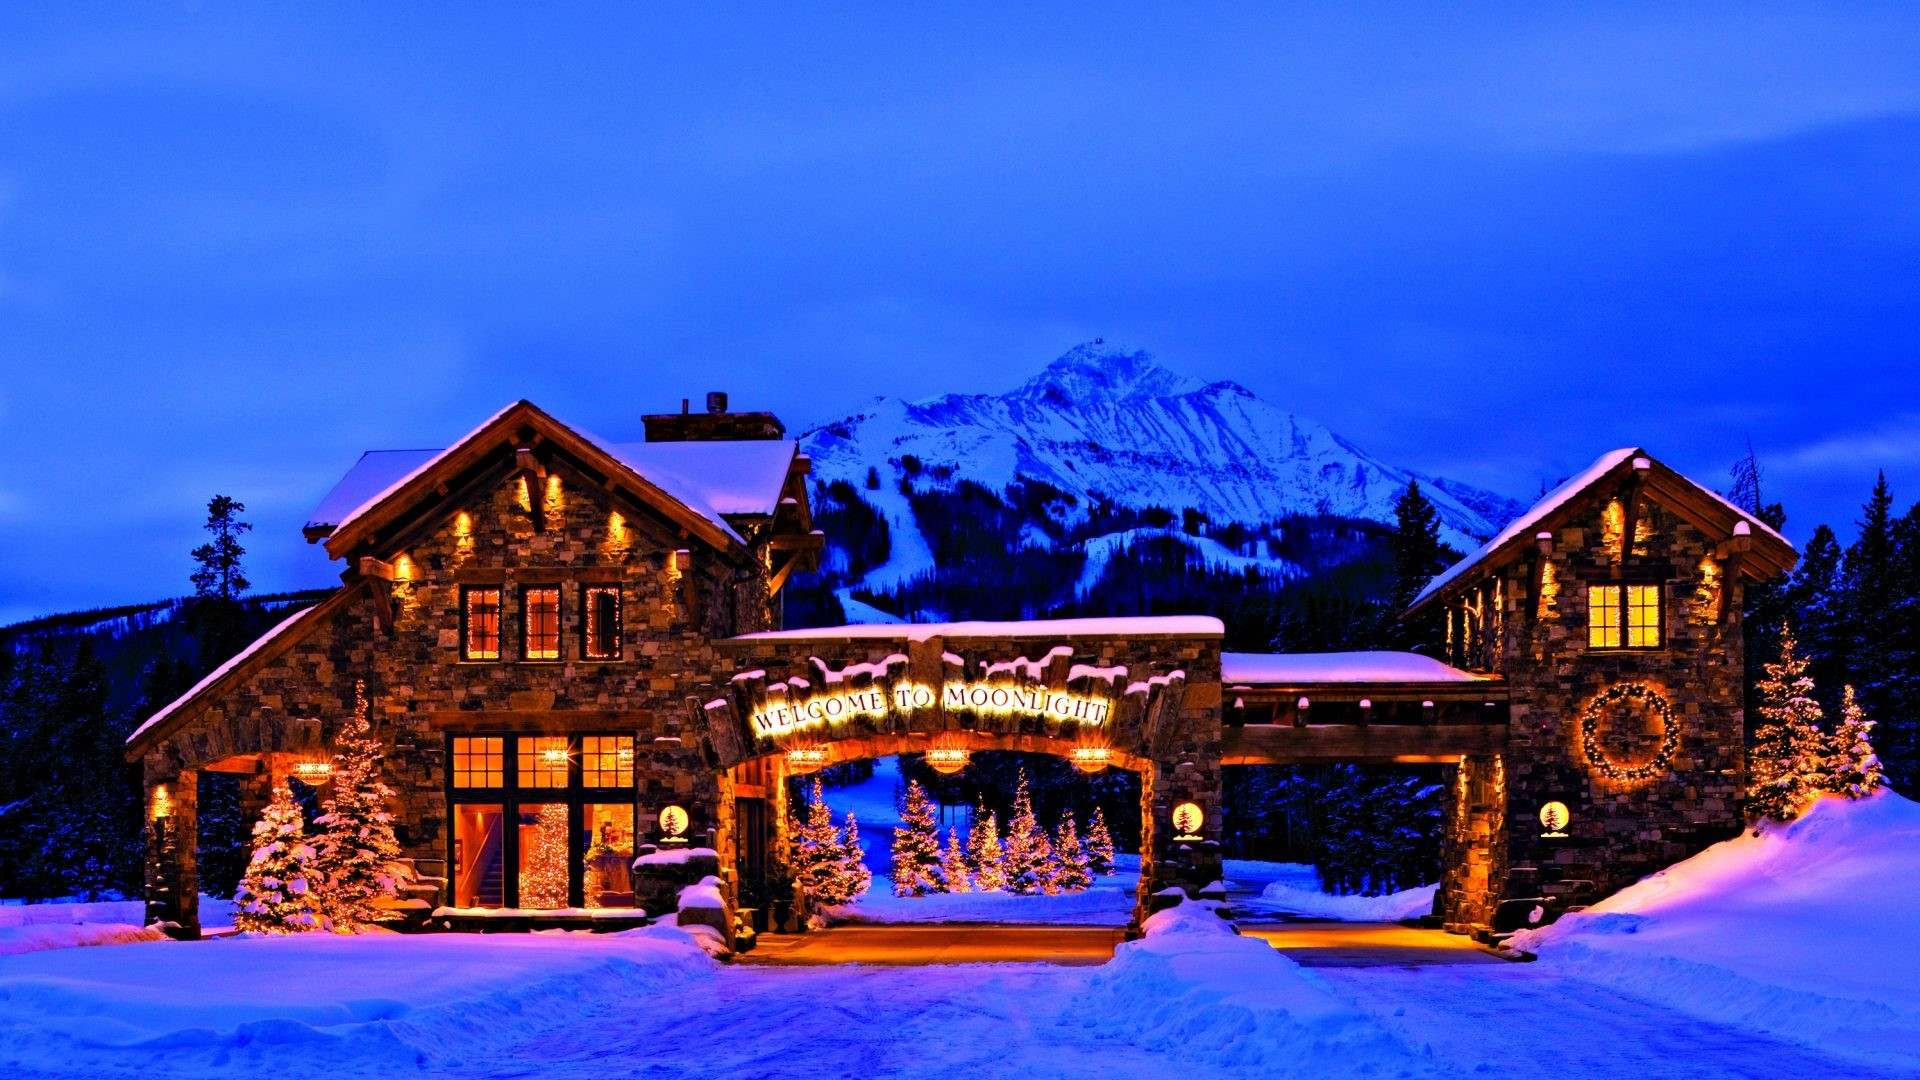 Merry Tag – View Mountains Beautiful Snow Cold Christmas Peaceful Houses  Lights Tree Beauty Landscape Frozen